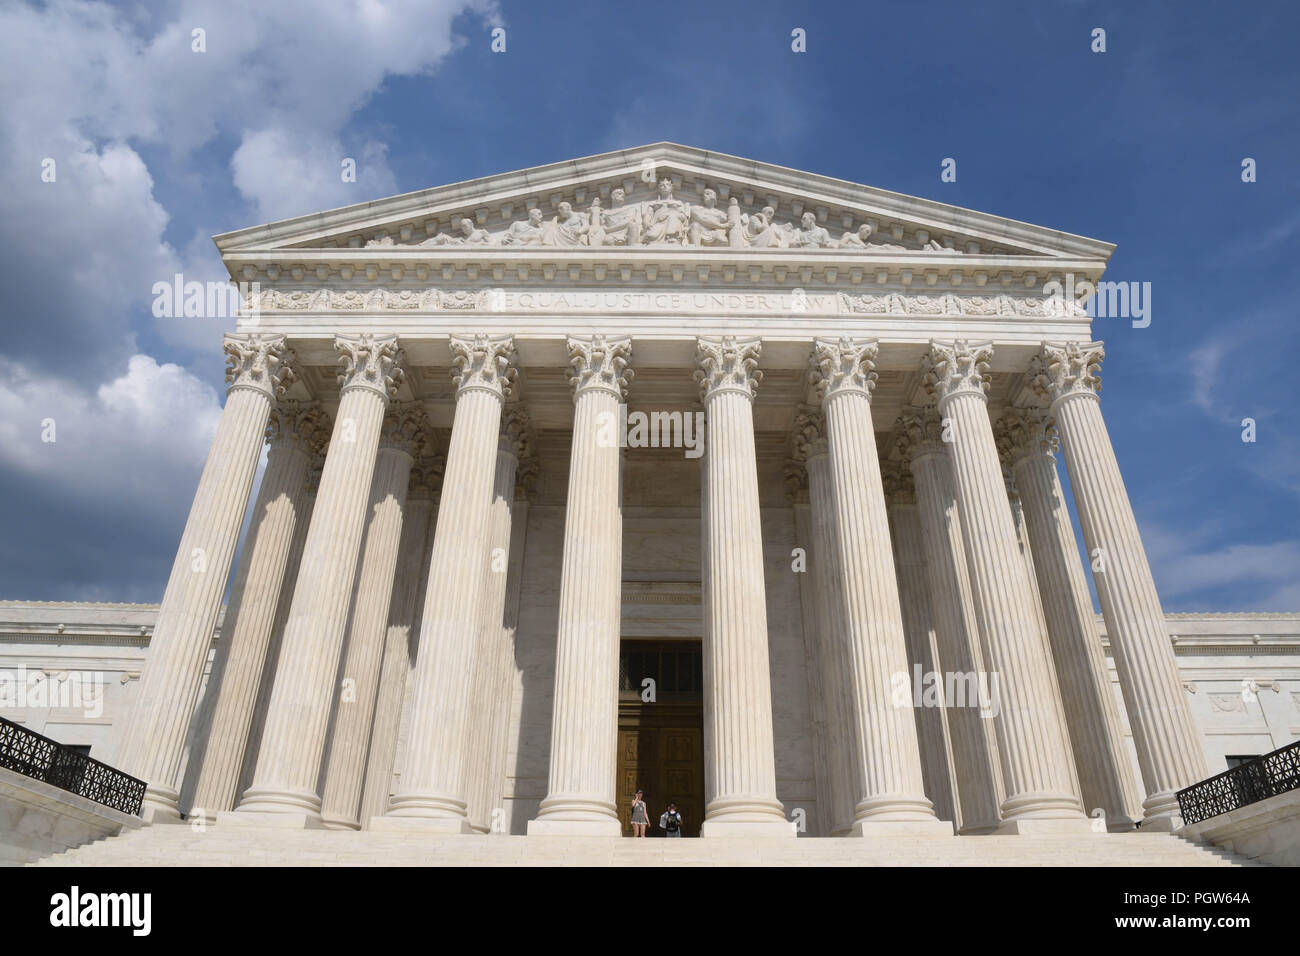 The U.S. Supreme Court building in Washington, D.C., on a sunny afternoon in August. - Stock Image